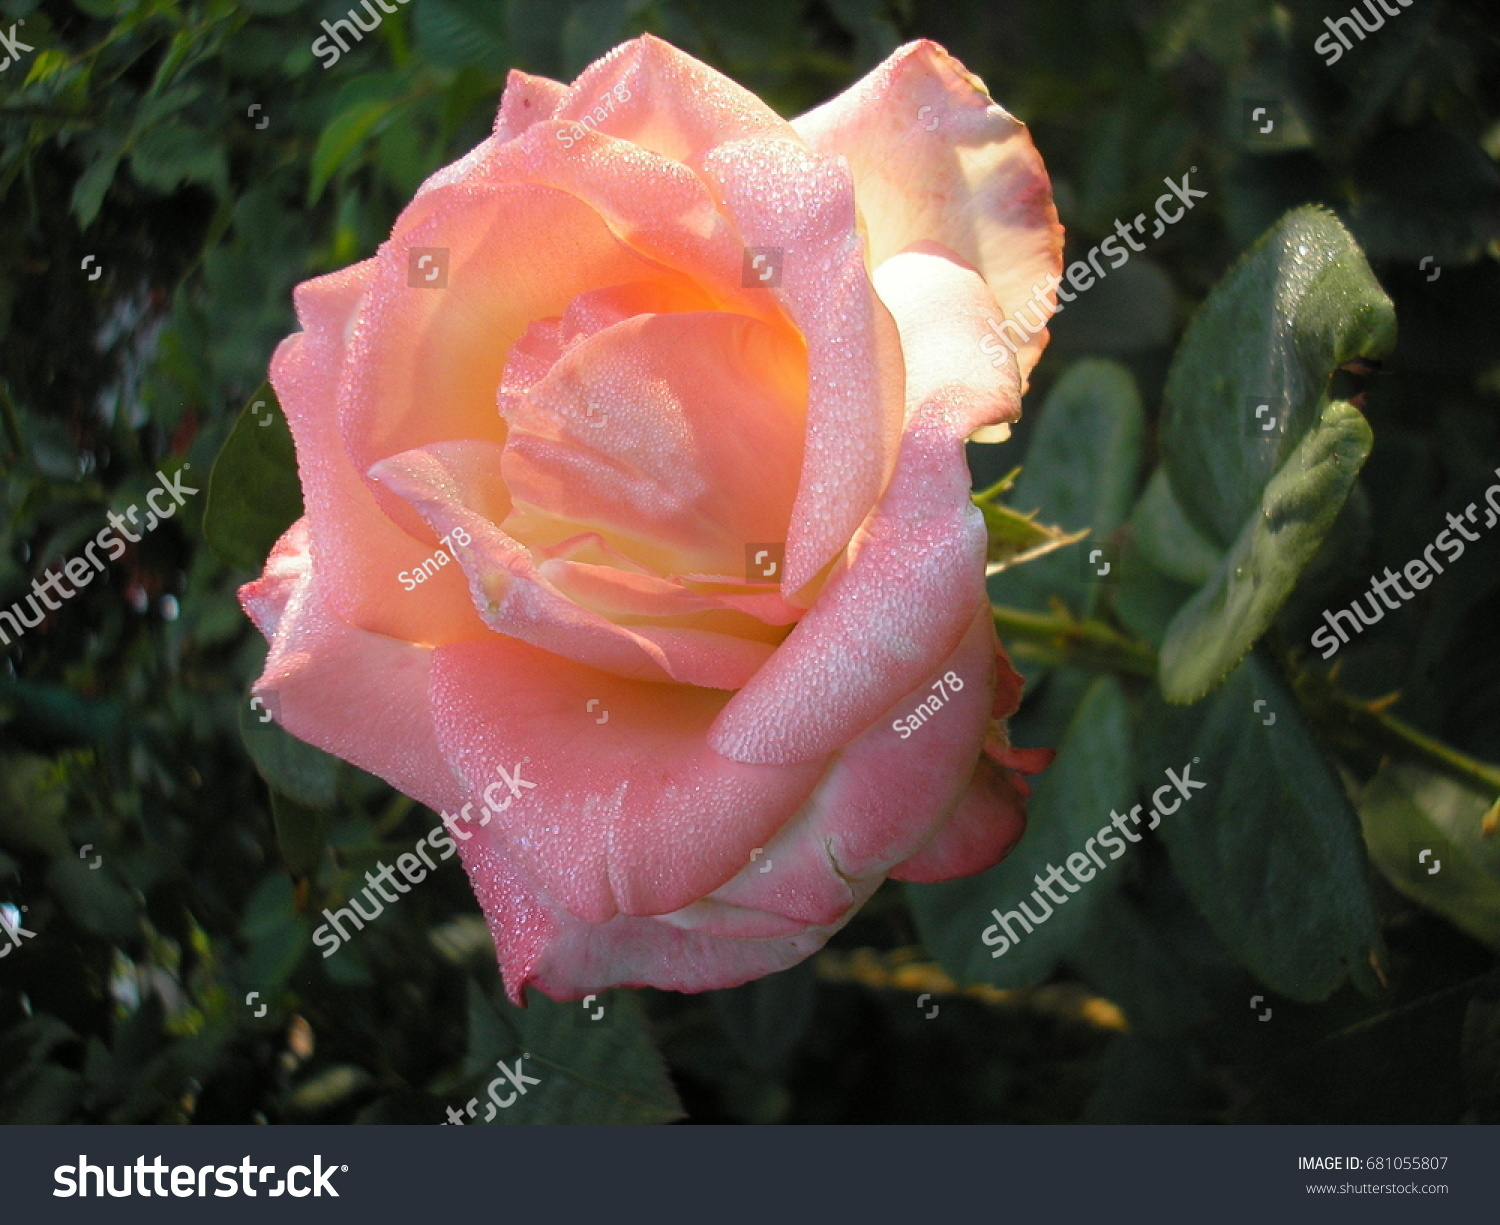 Rose queen flowers photo beautiful rose stock photo edit now rose is the queen of flowers photo of a beautiful rose in the garden izmirmasajfo